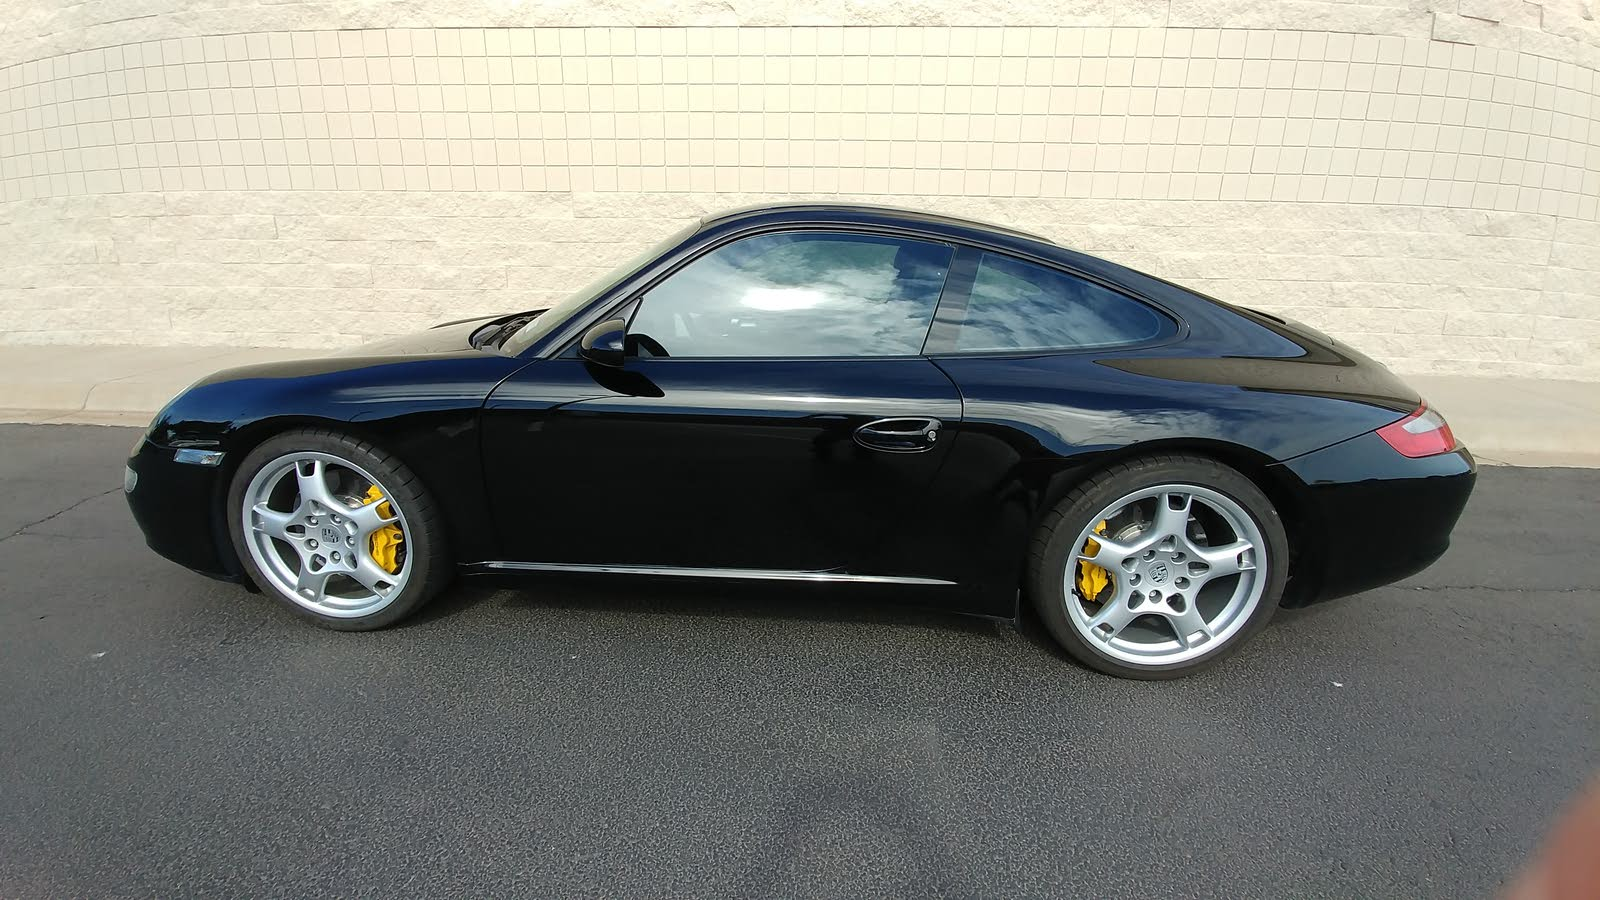 porsche 911 questions best way to evaluate my car and advertising options for a private sell. Black Bedroom Furniture Sets. Home Design Ideas